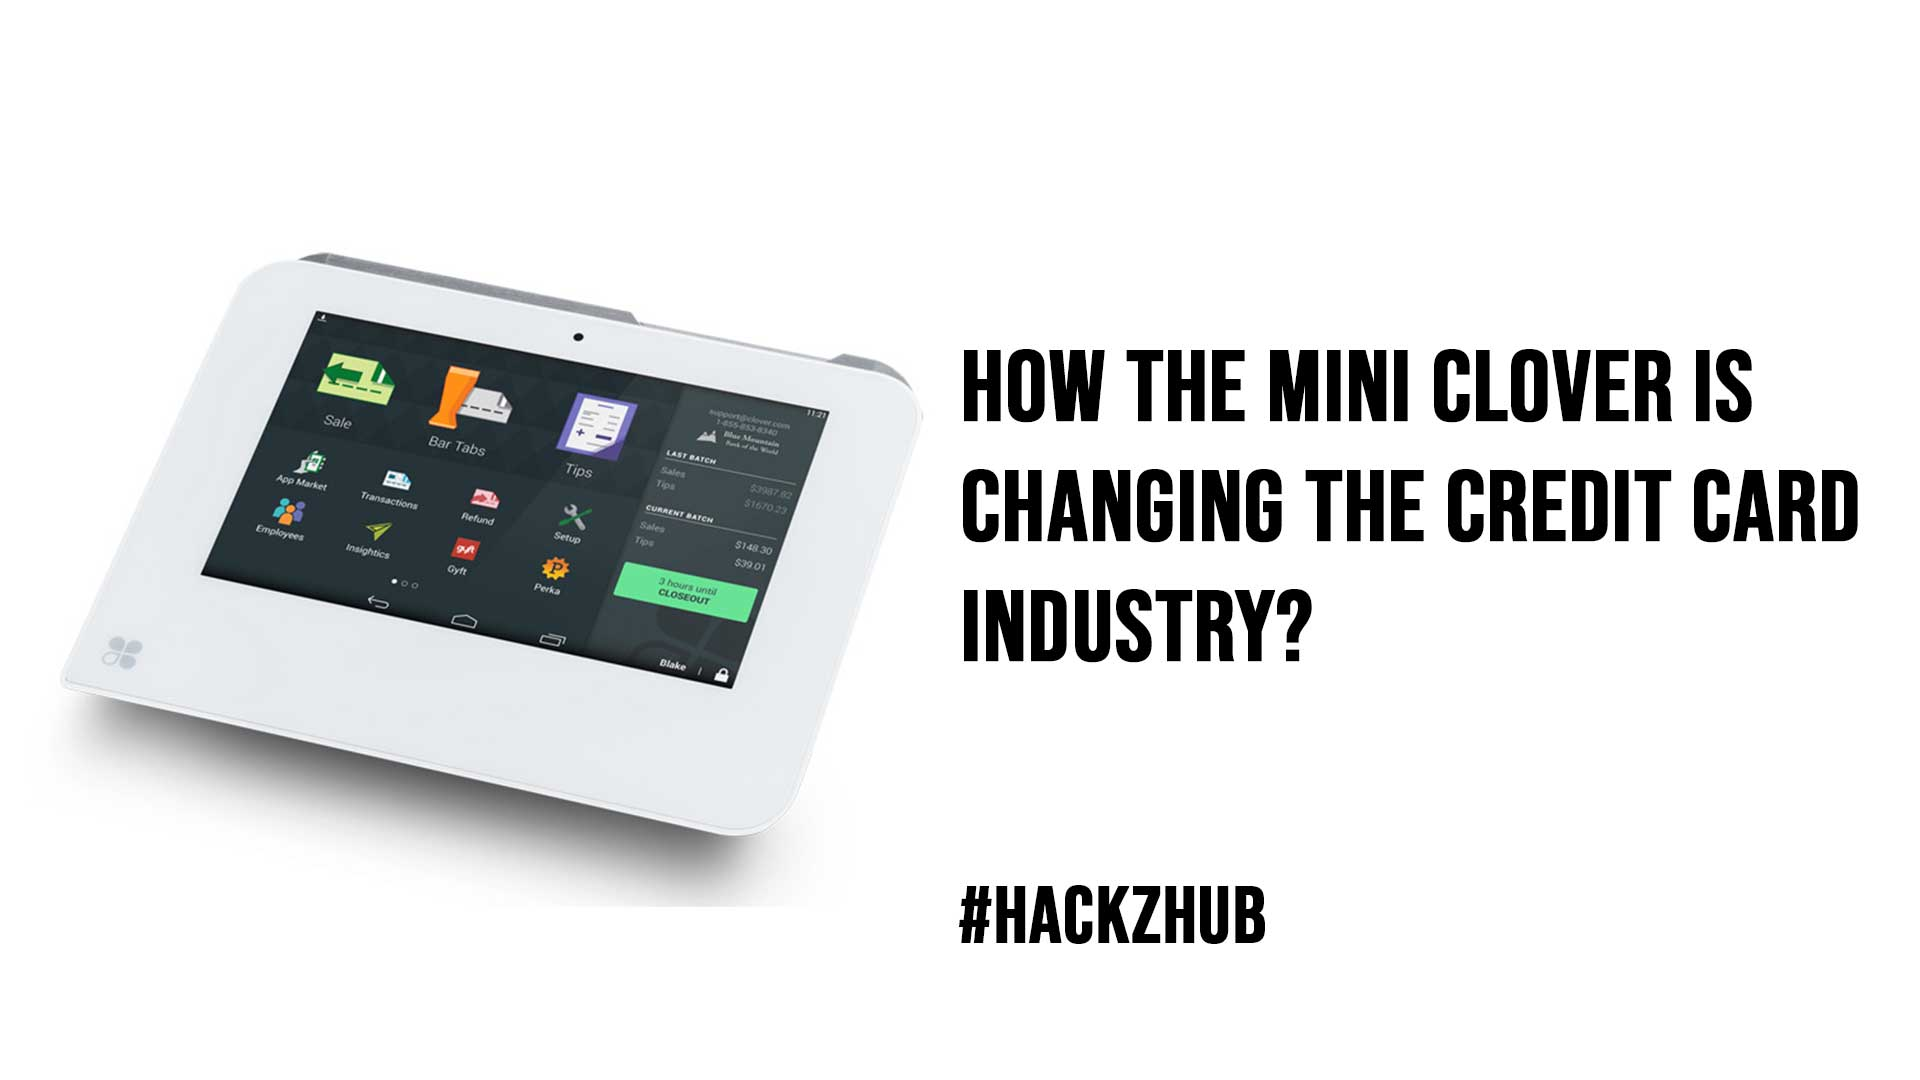 How The Mini Clover Is Changing the Credit Card Industry